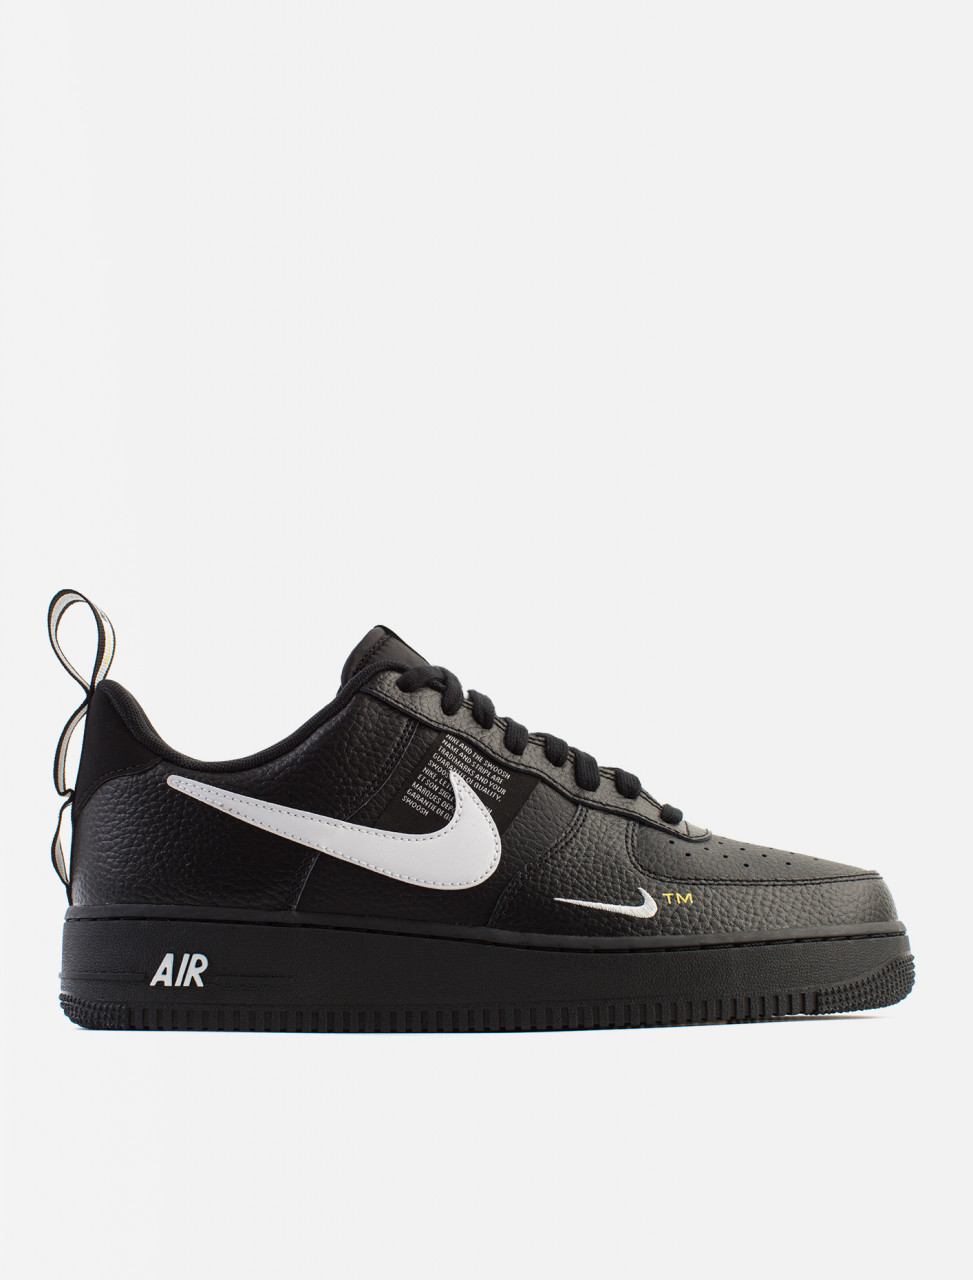 Air Force 1 '07 LV8 Utility Sneaker